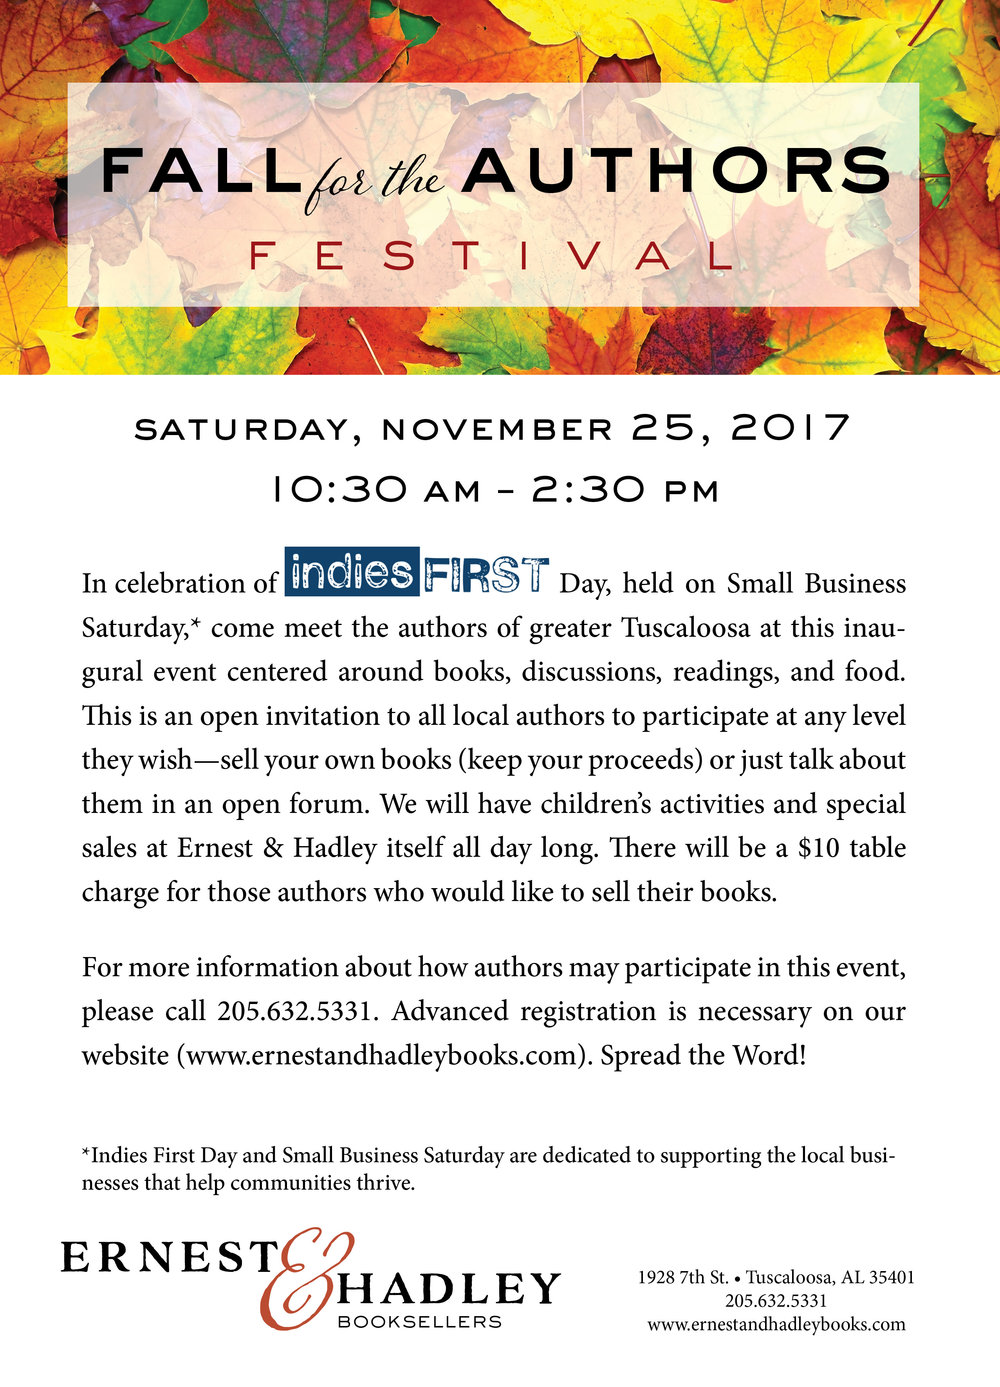 Fall for the Authors Festival.jpg